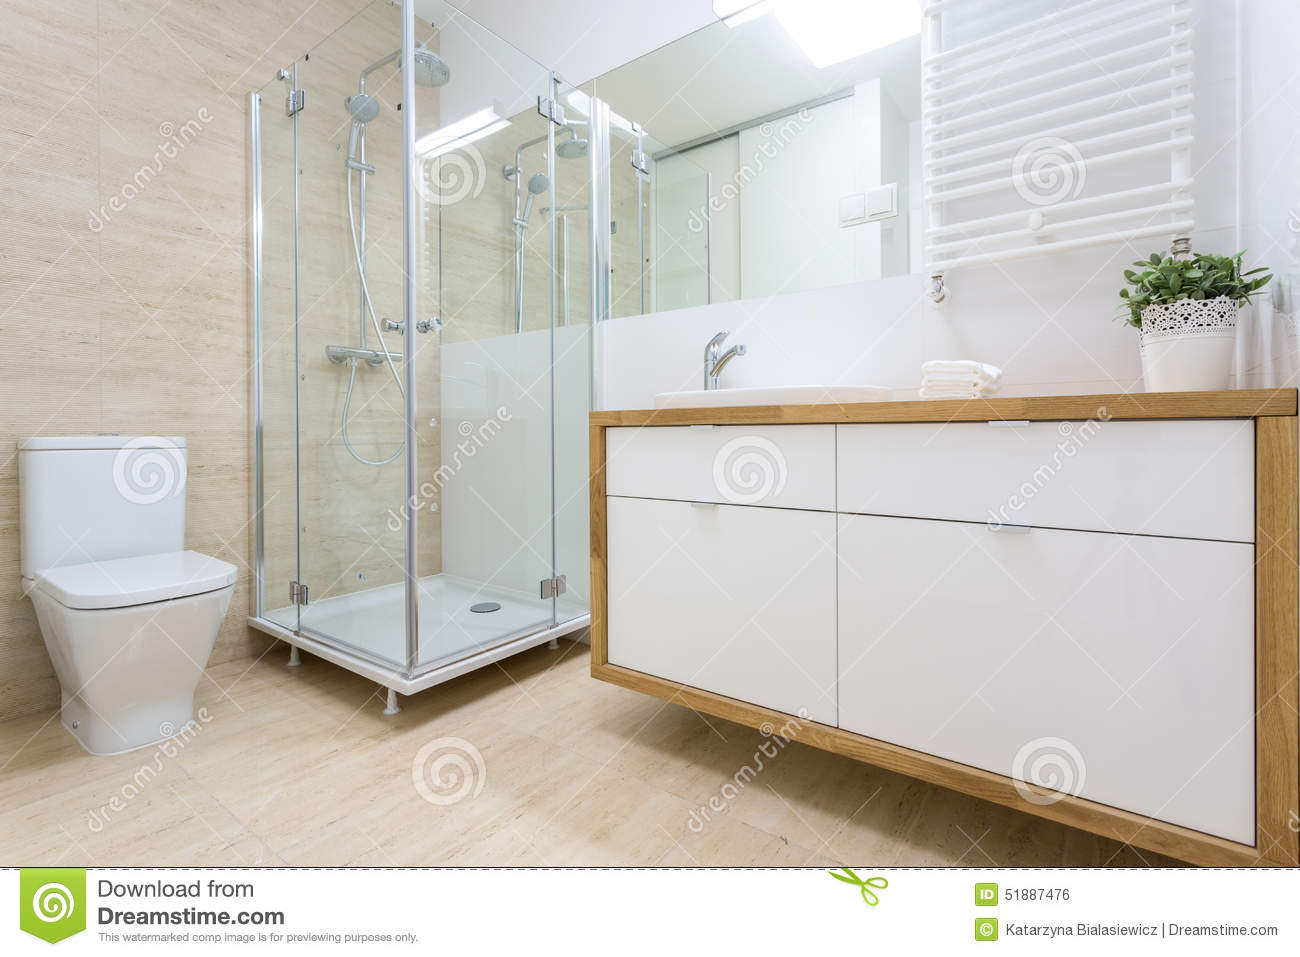 Washroom interior in traditional design stock photo for Washroom photo